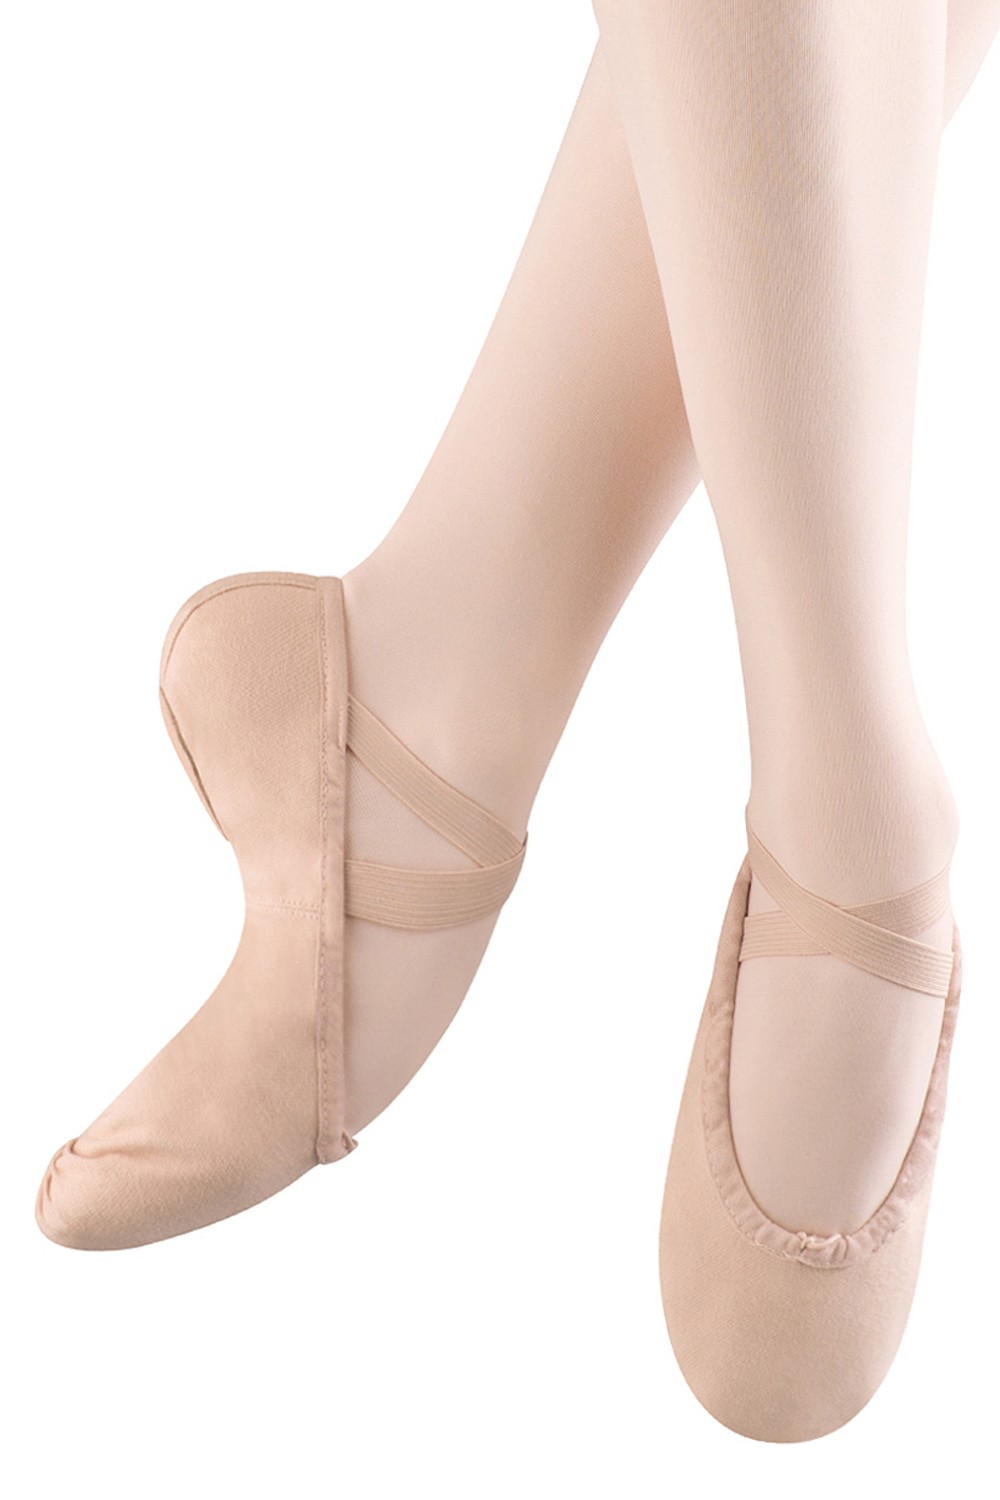 Pump - Girls Girl's Ballet Shoes